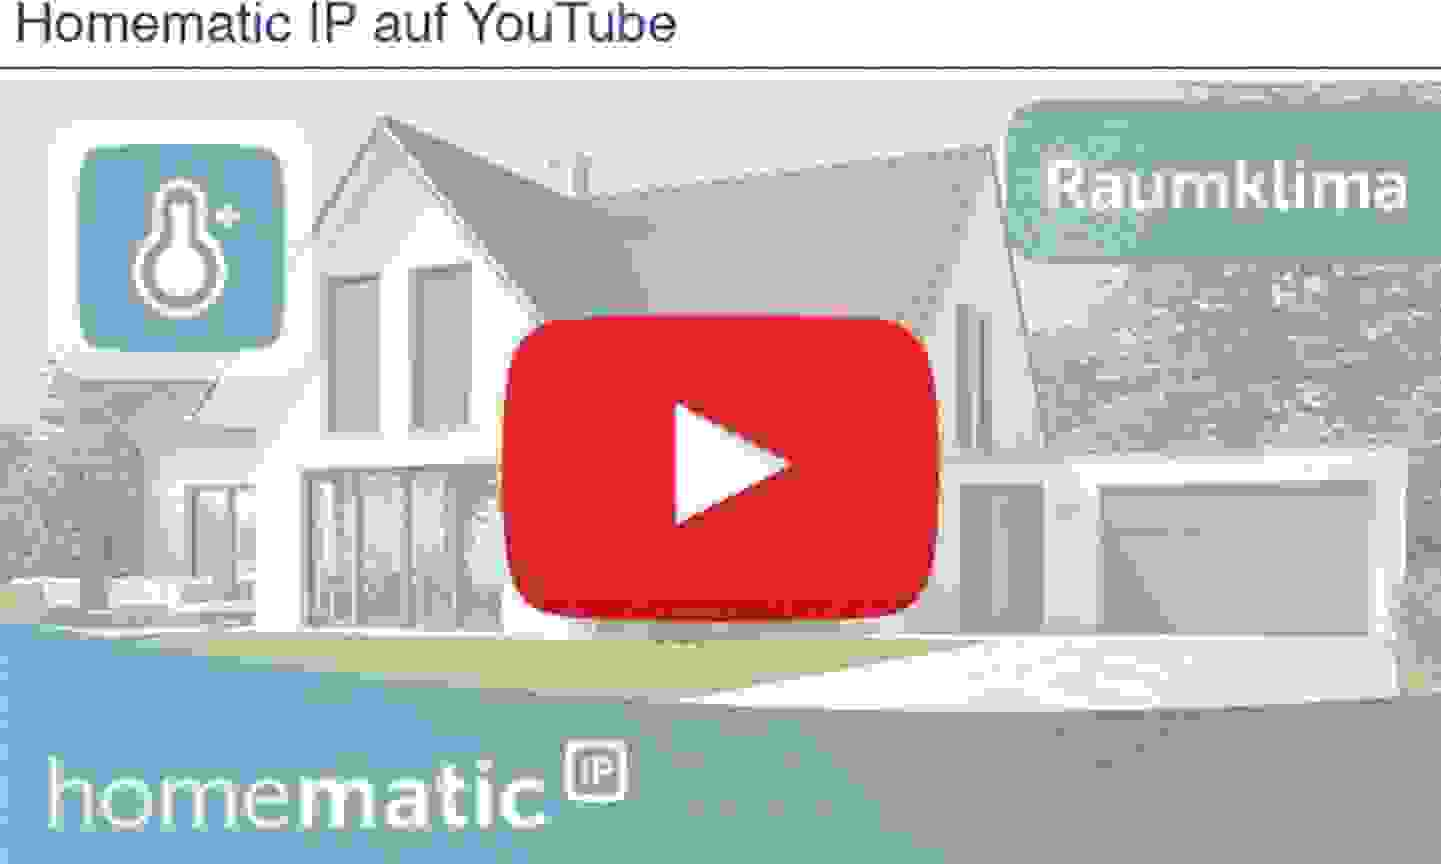 Homematic IP auf Youtube